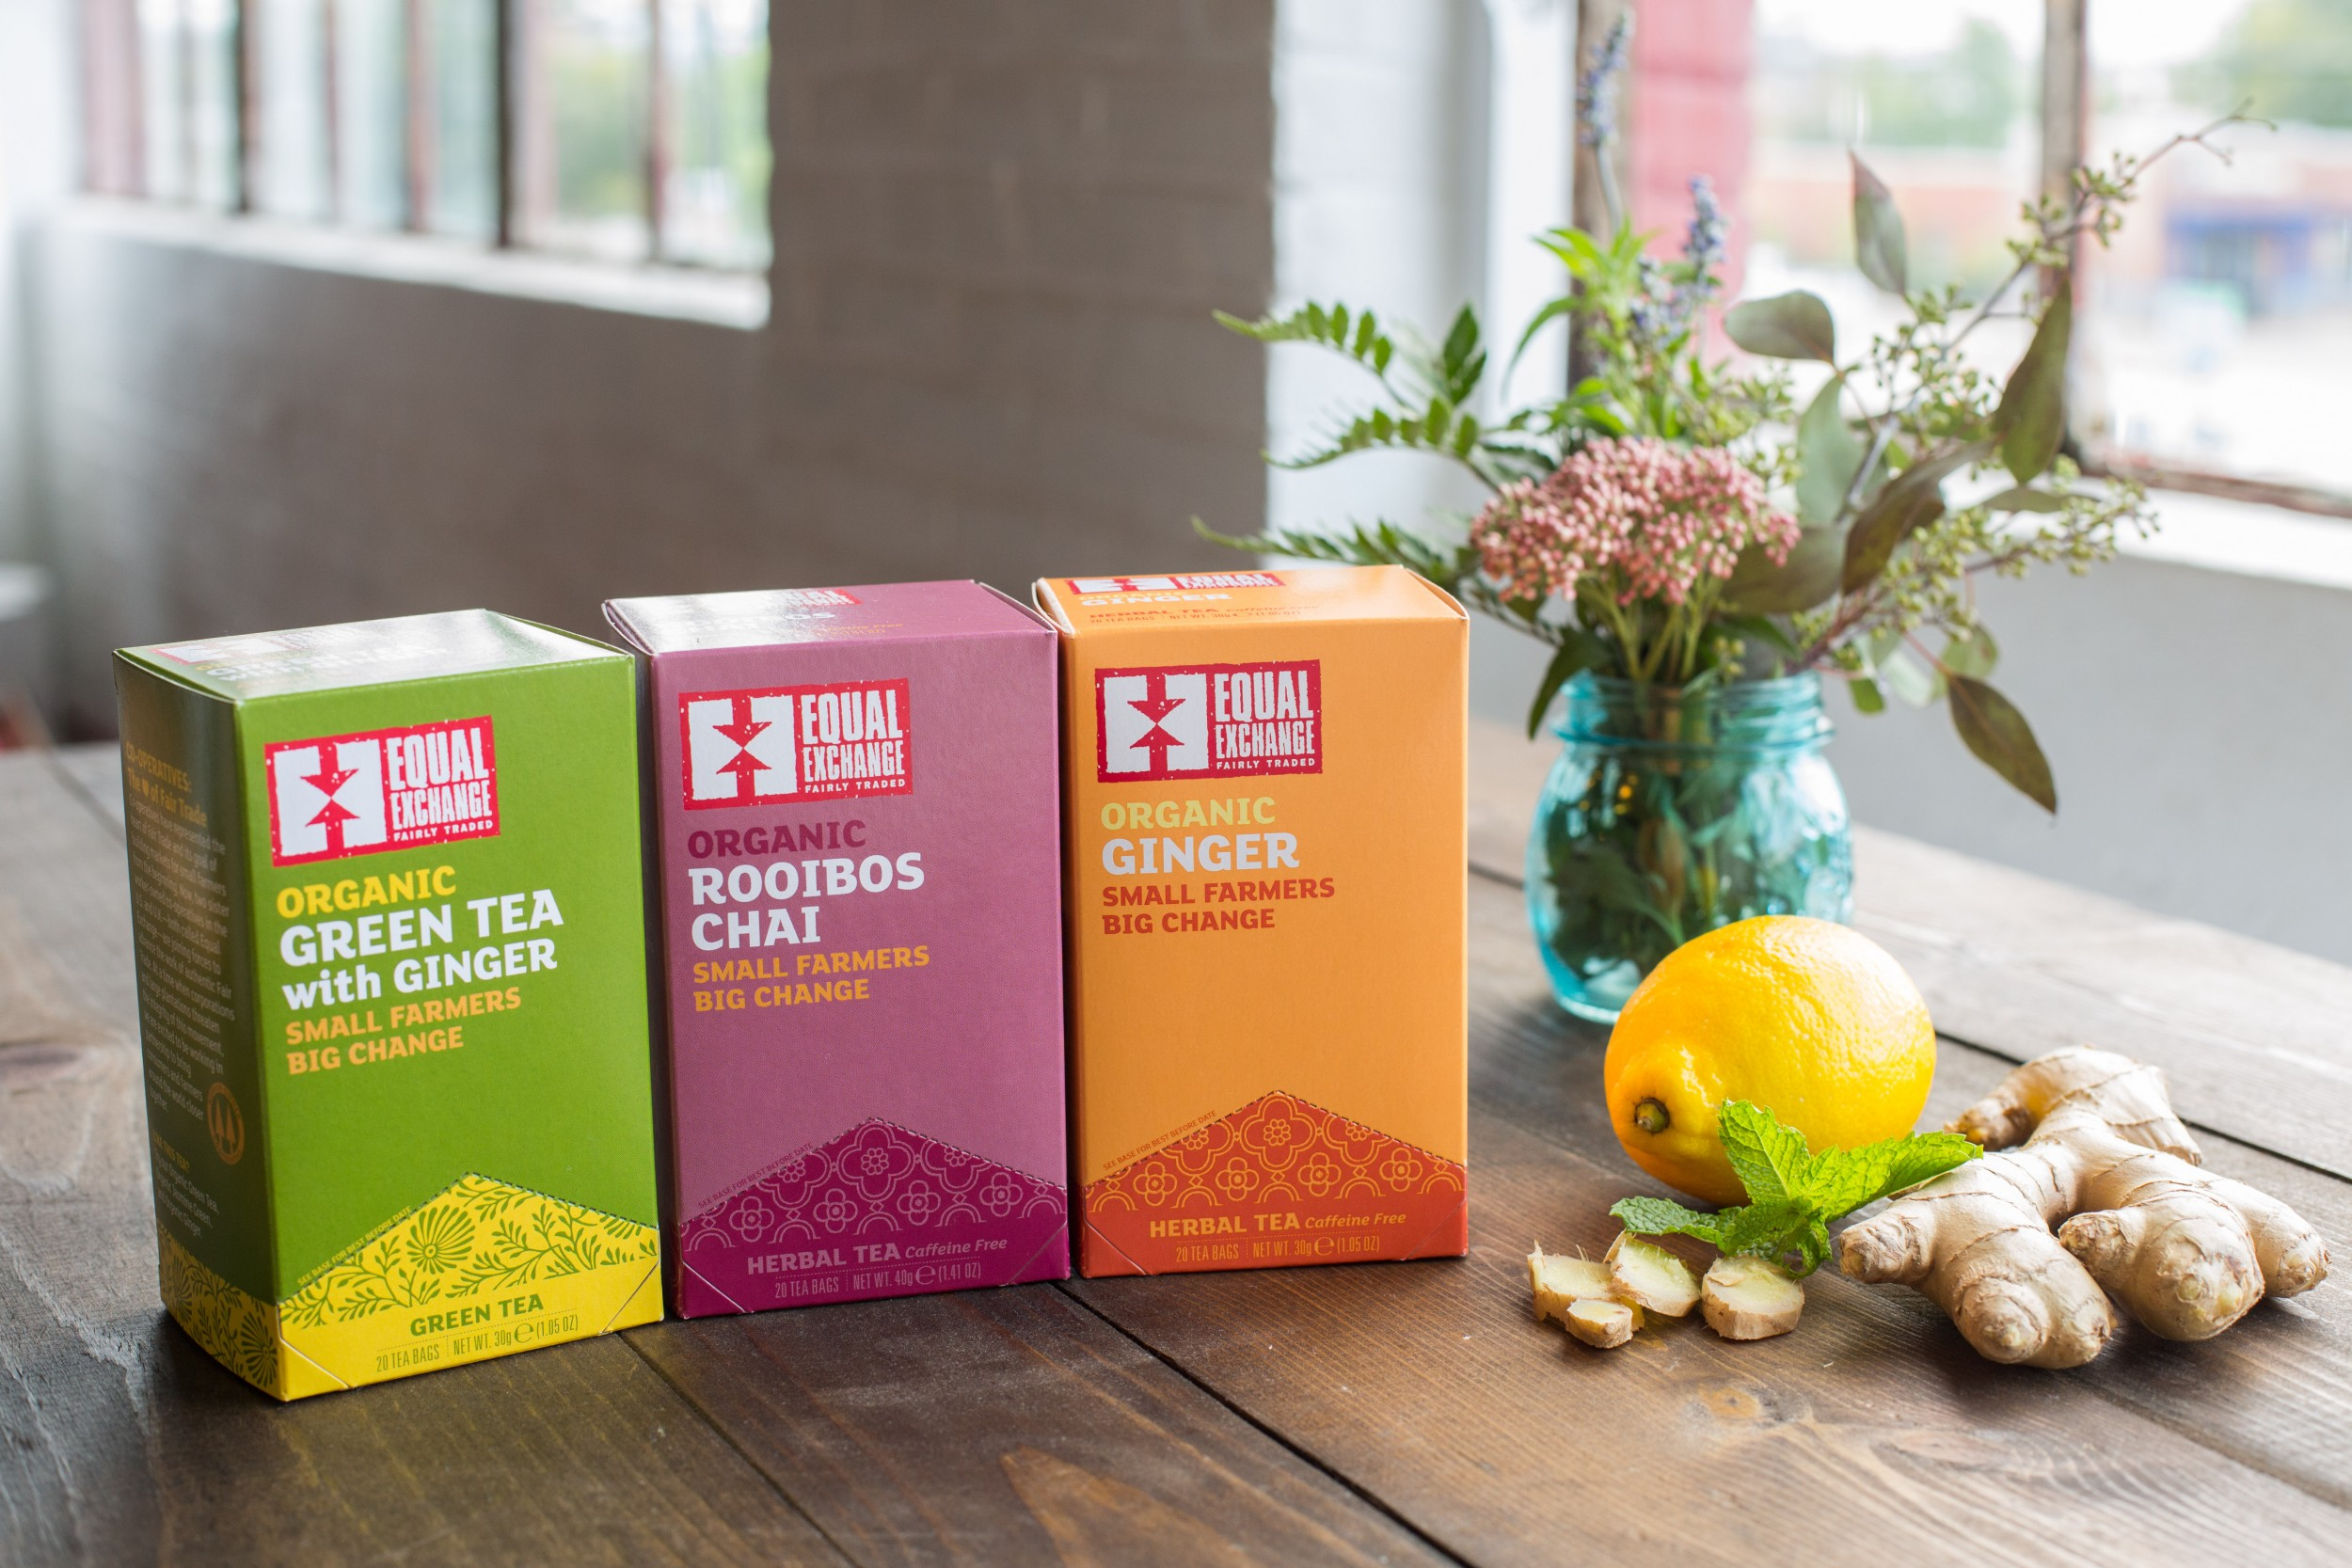 Image shows three boxes of Equal Exchange's organic, fairly traded teas on a table top with a vase of spring flowersrs